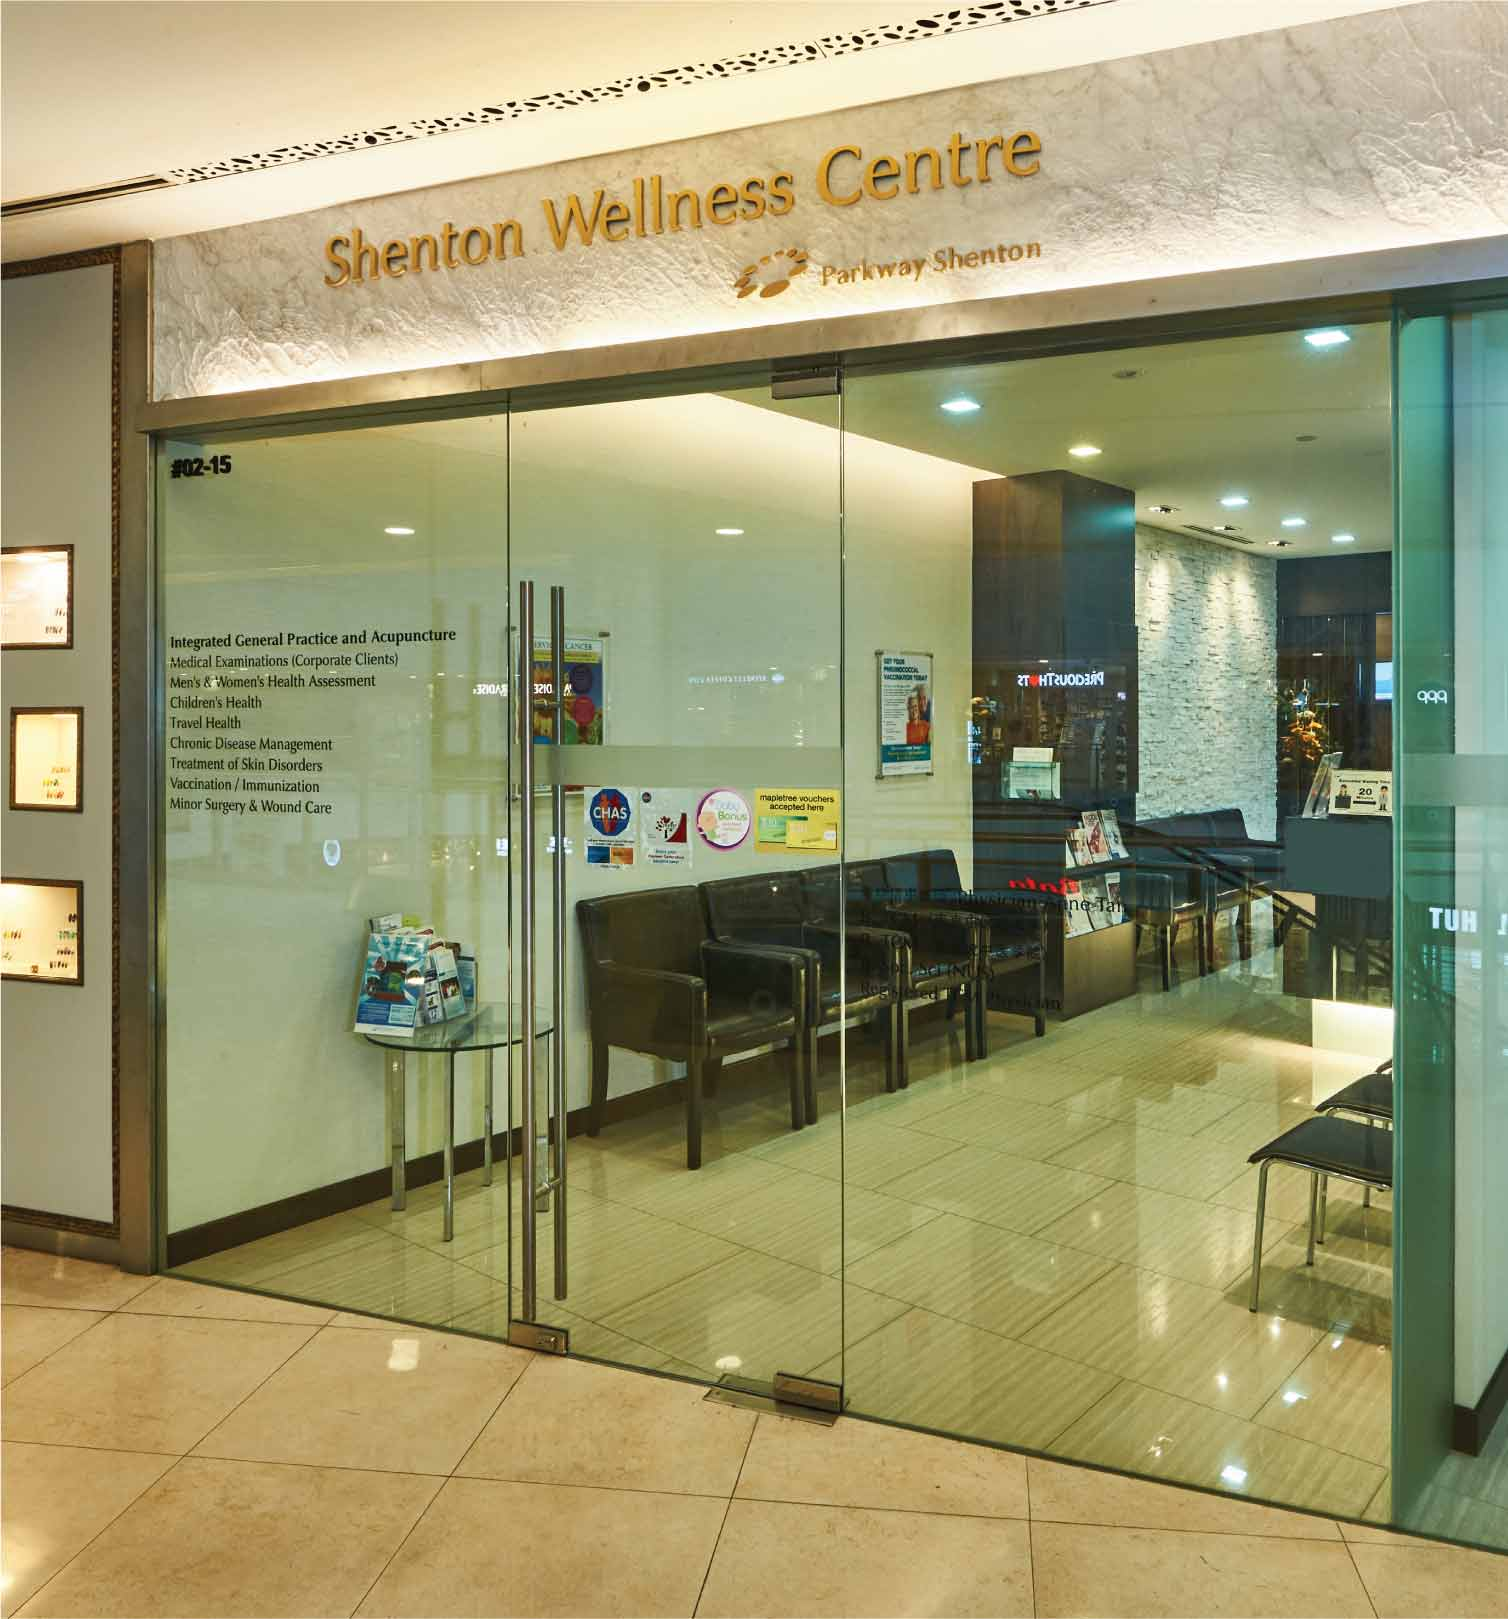 Alexandra Retail Centre - Shenton Wellness Centre